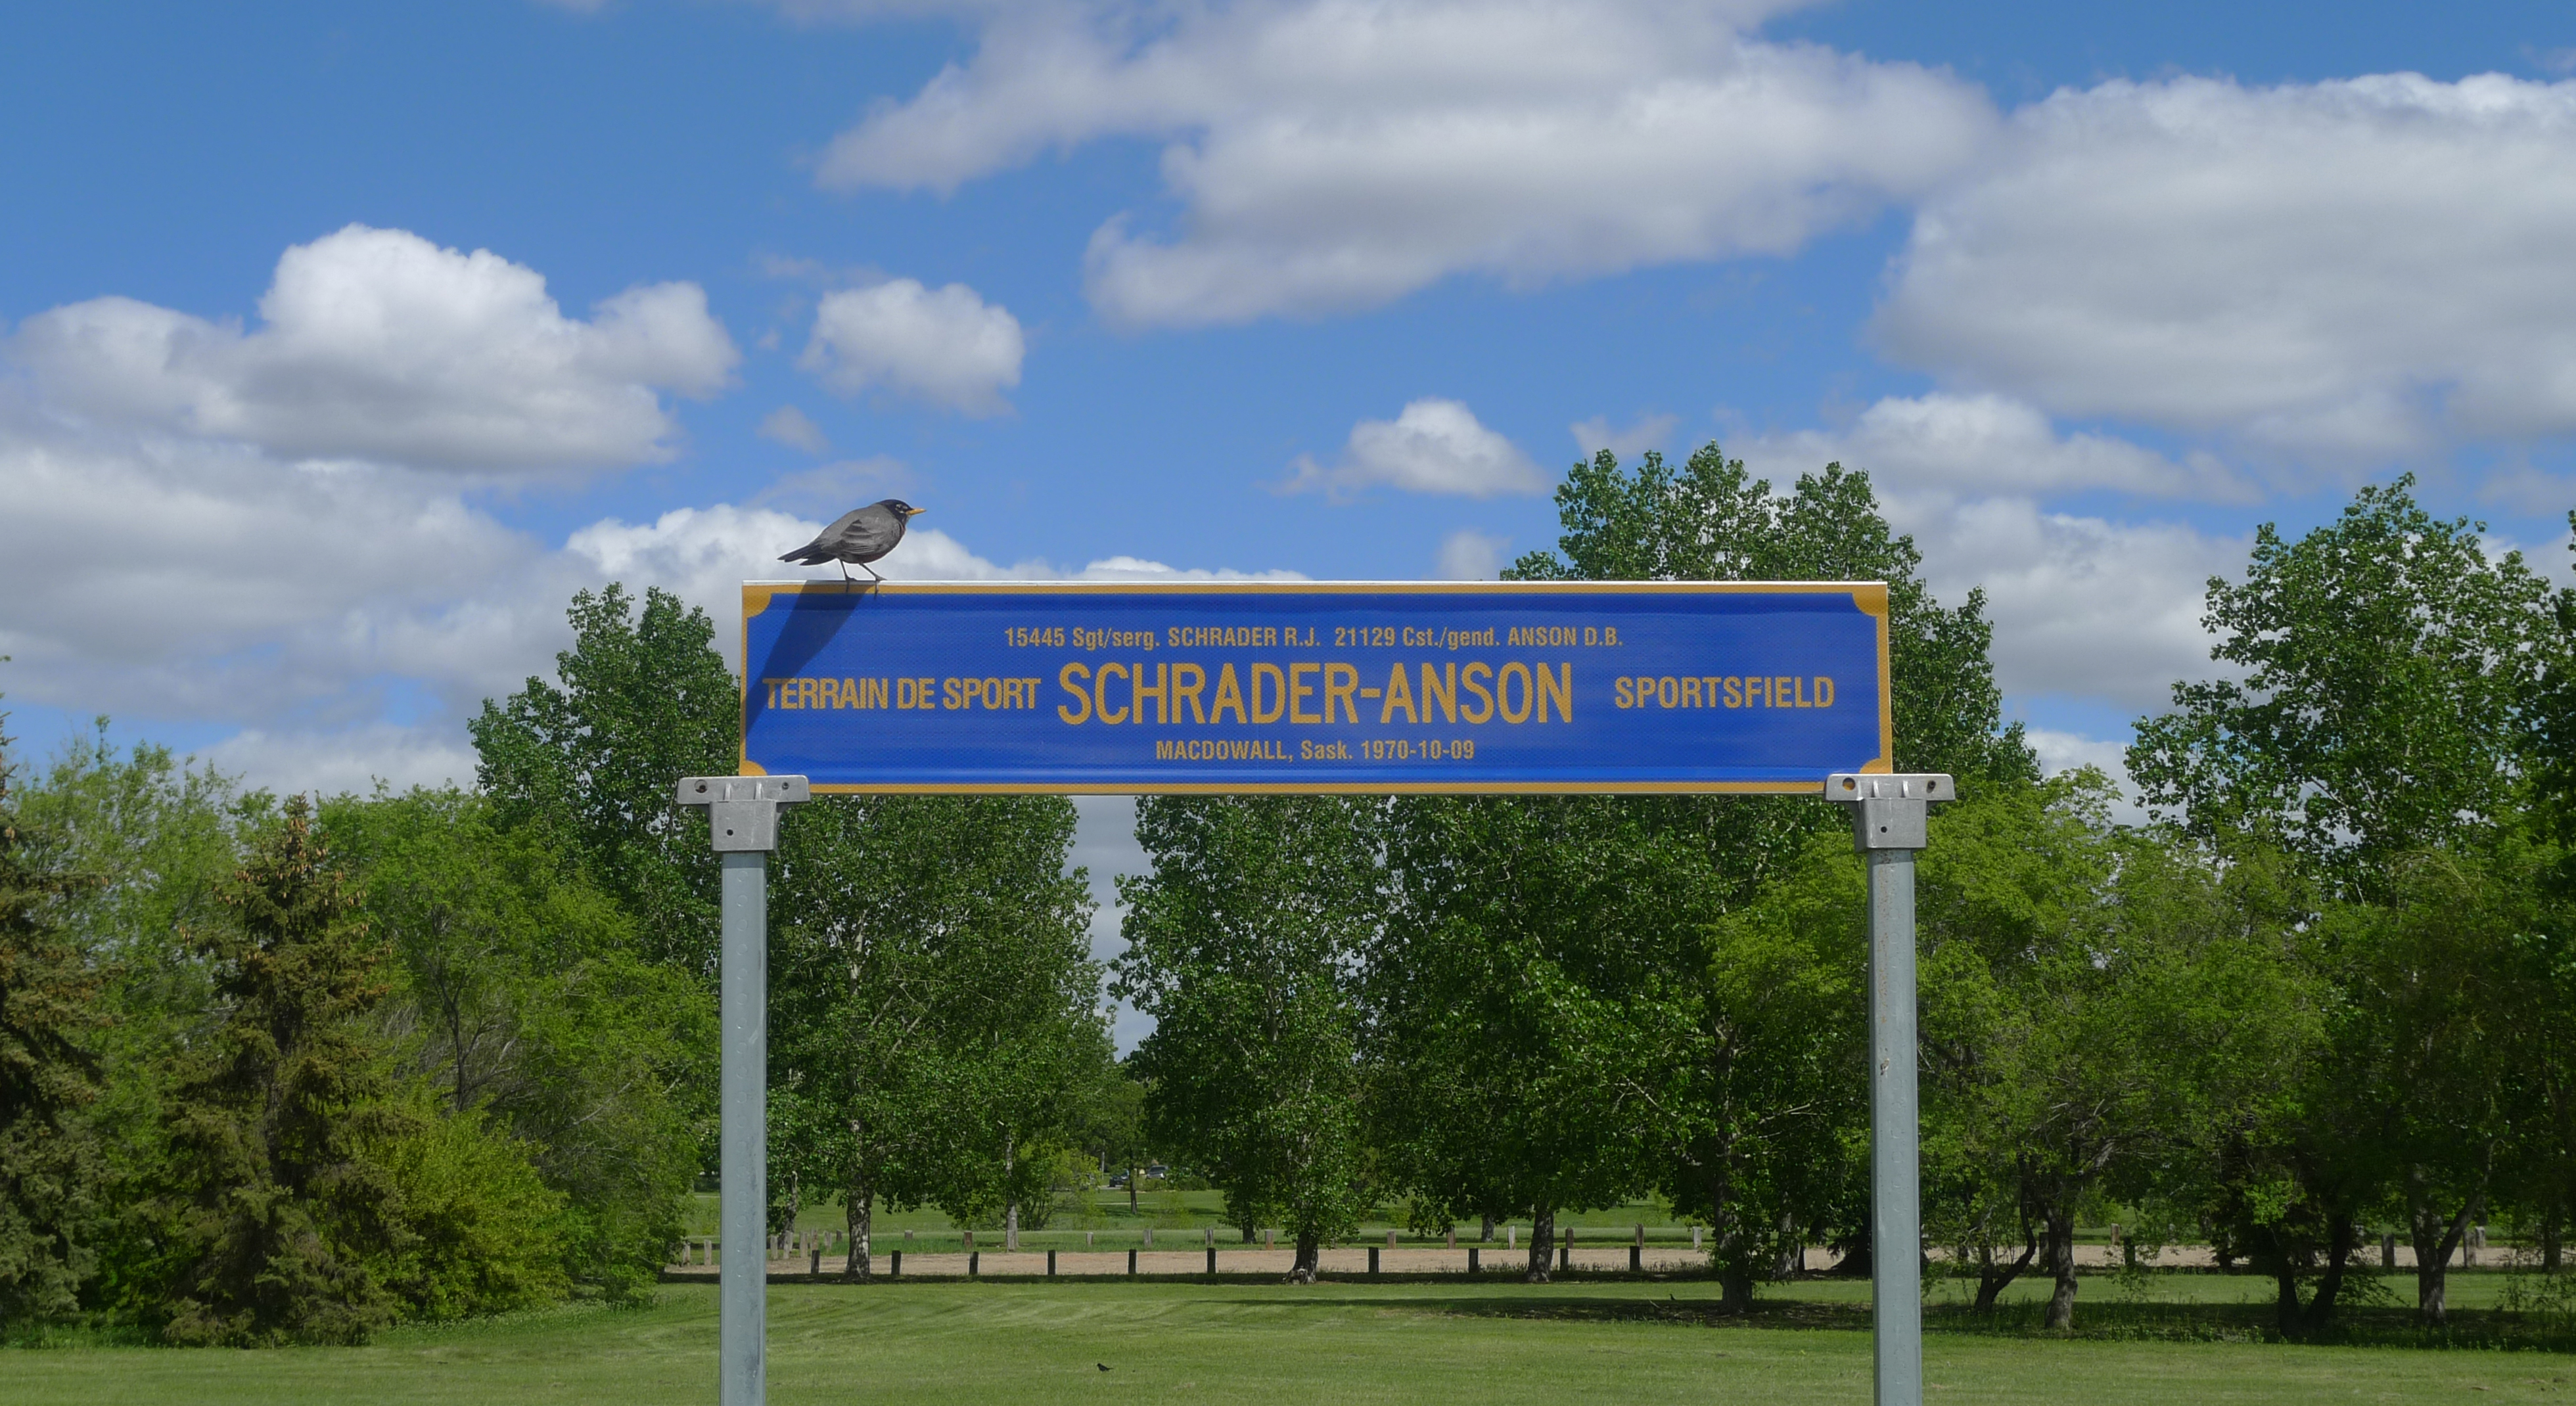 Schrader-Anson Sports Field at Depot – © Her Majesty the Queen in Right of Canada as represented by the Royal Canadian Mounted Police